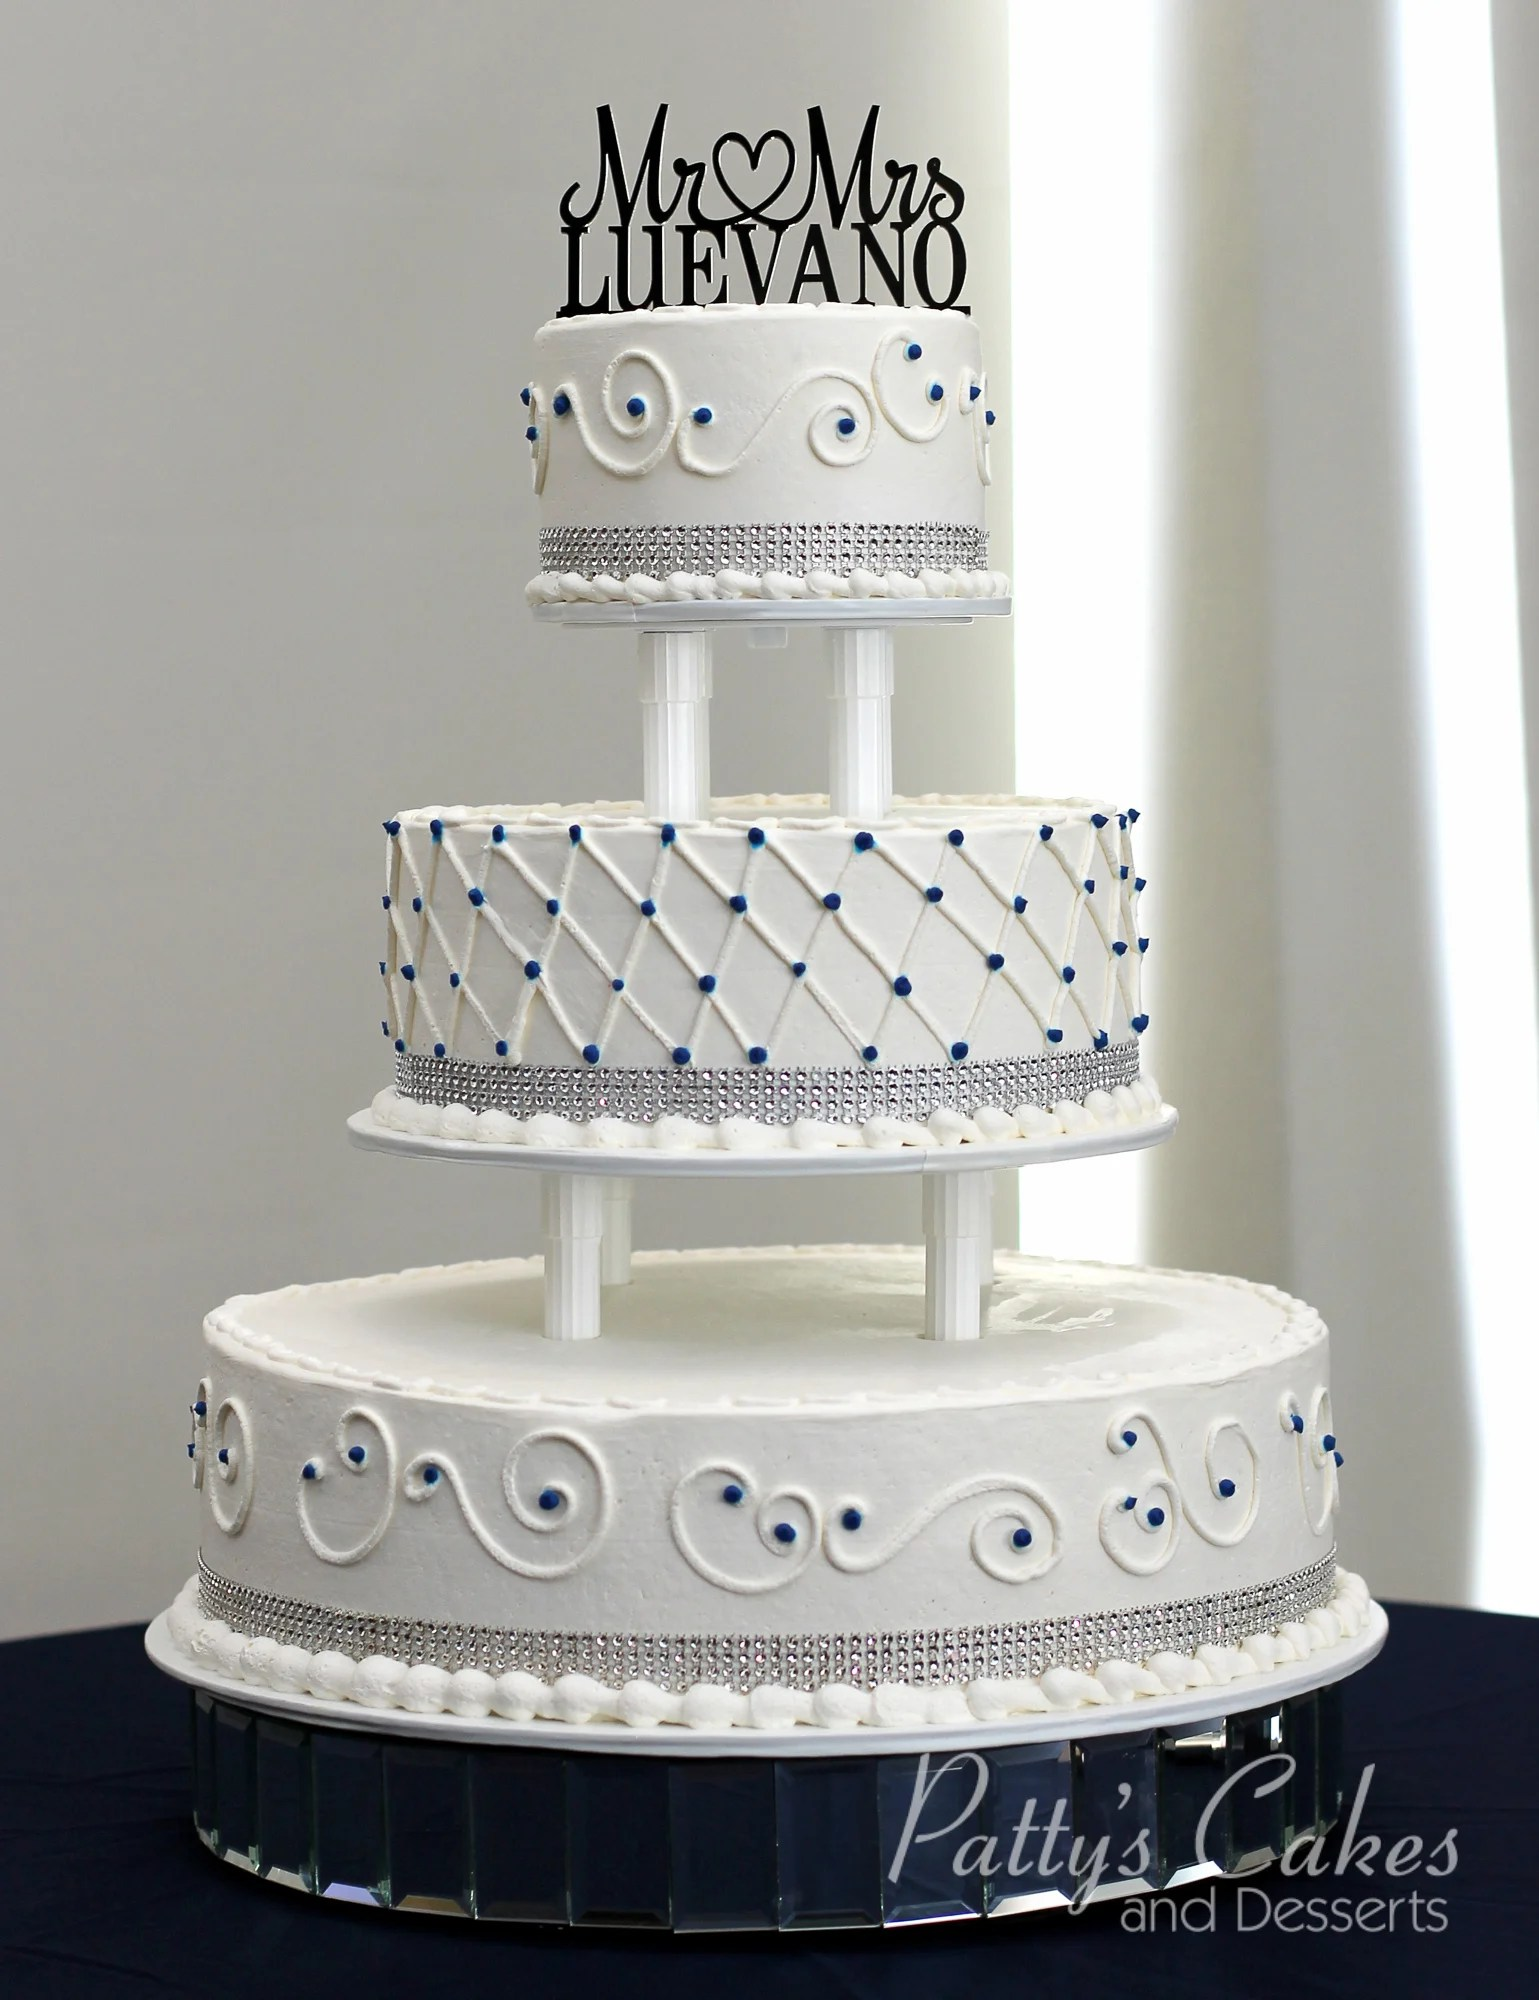 Photo Of A Tiered Wedding Cake